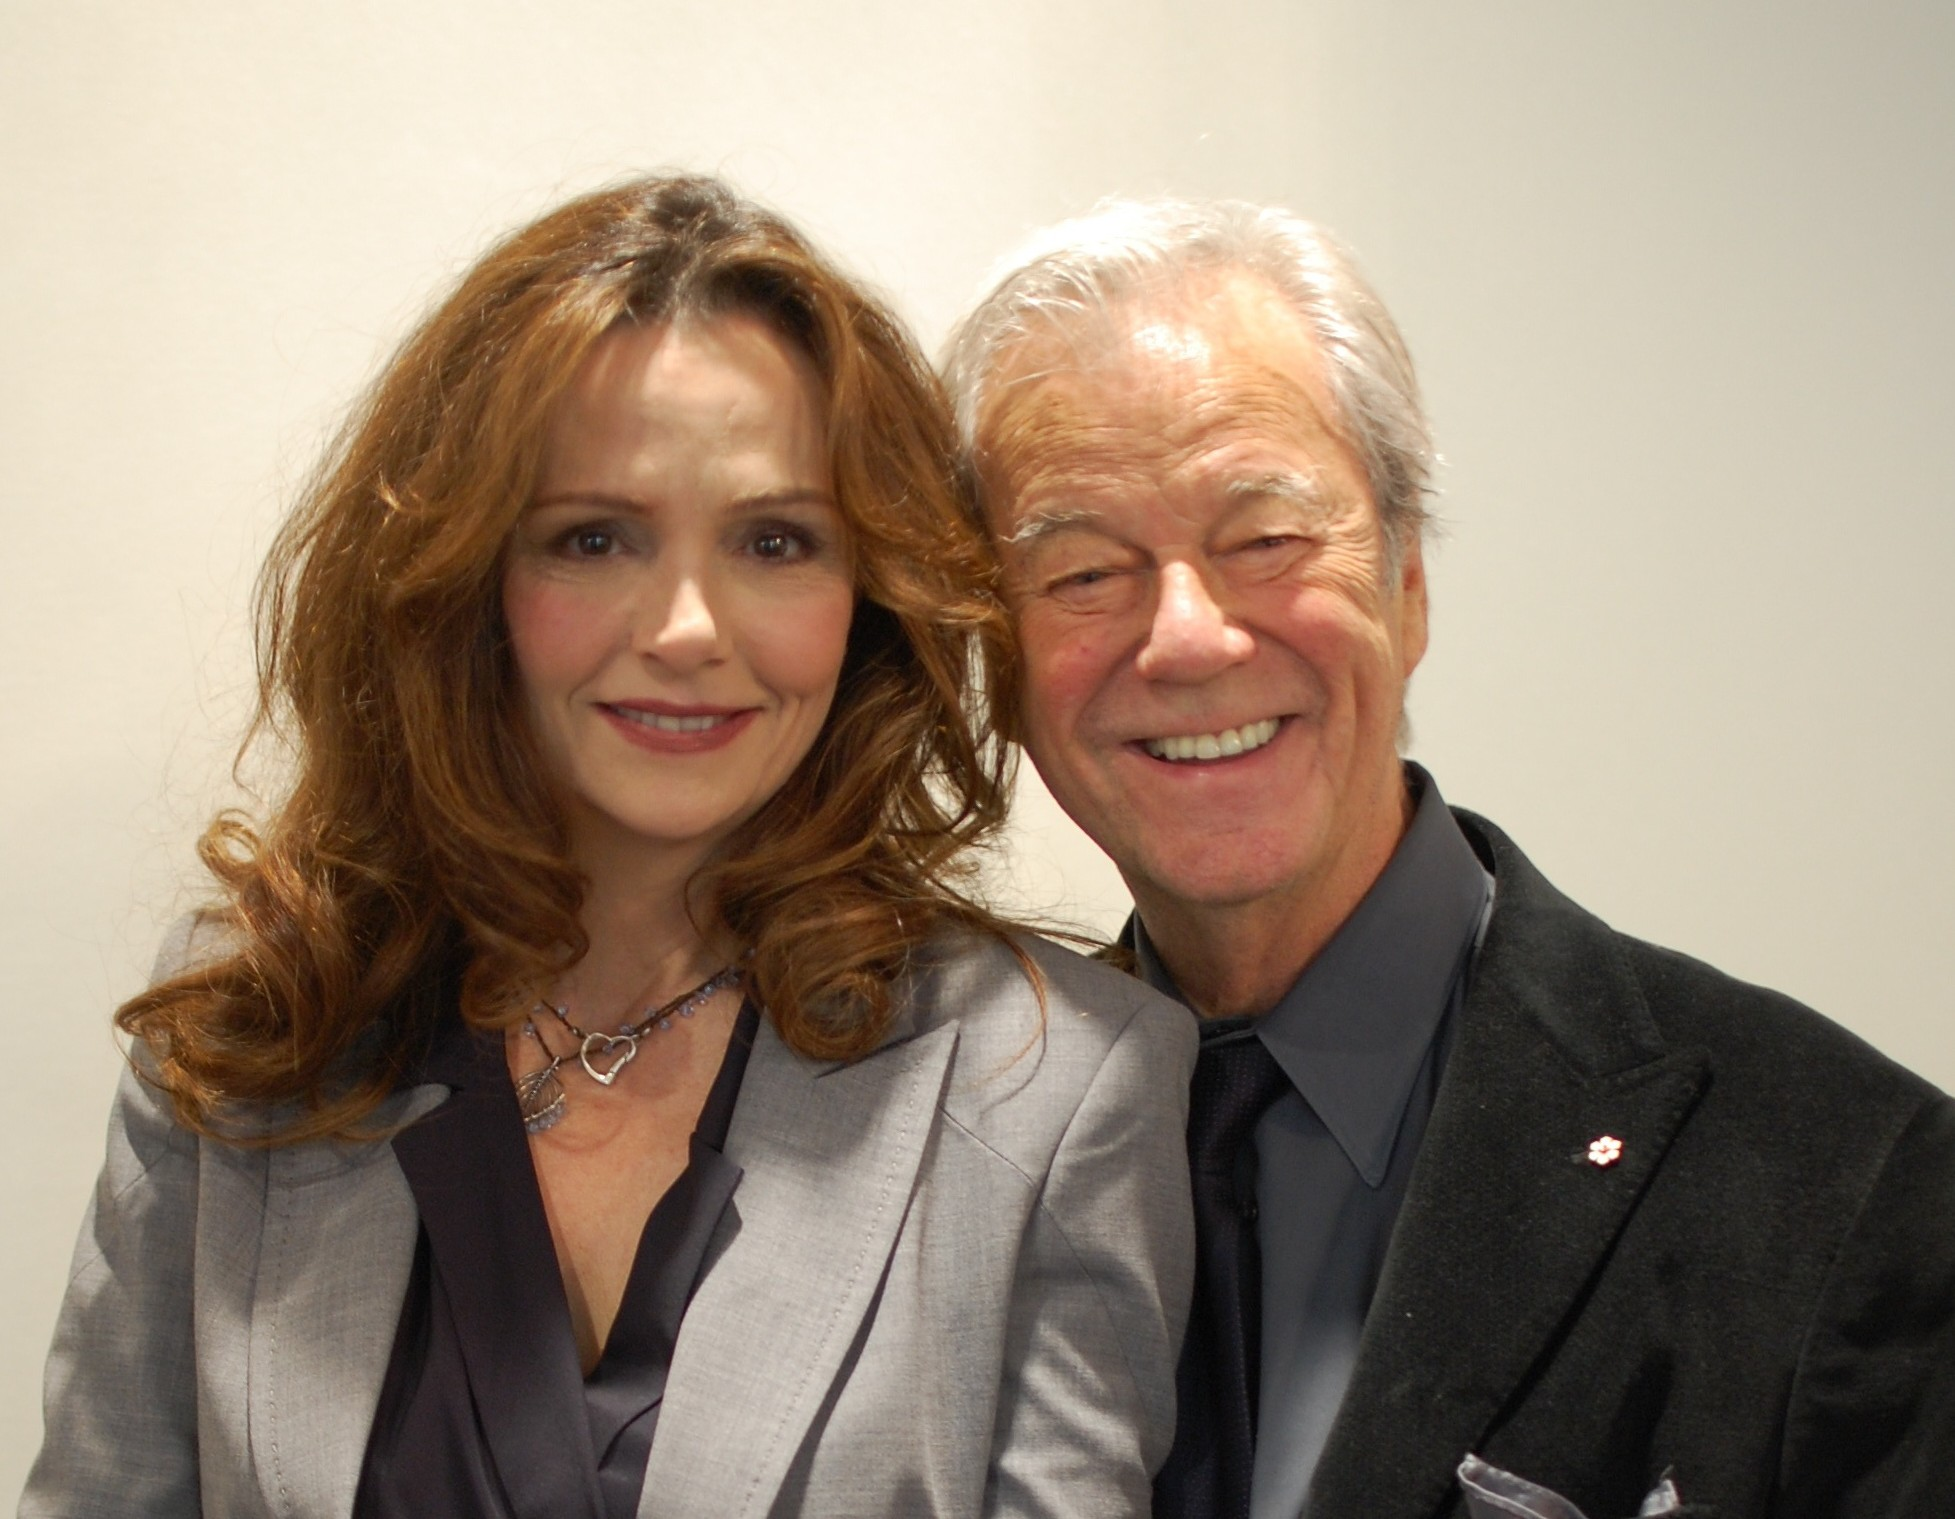 Jennifer Dale & Gordon Pinsent